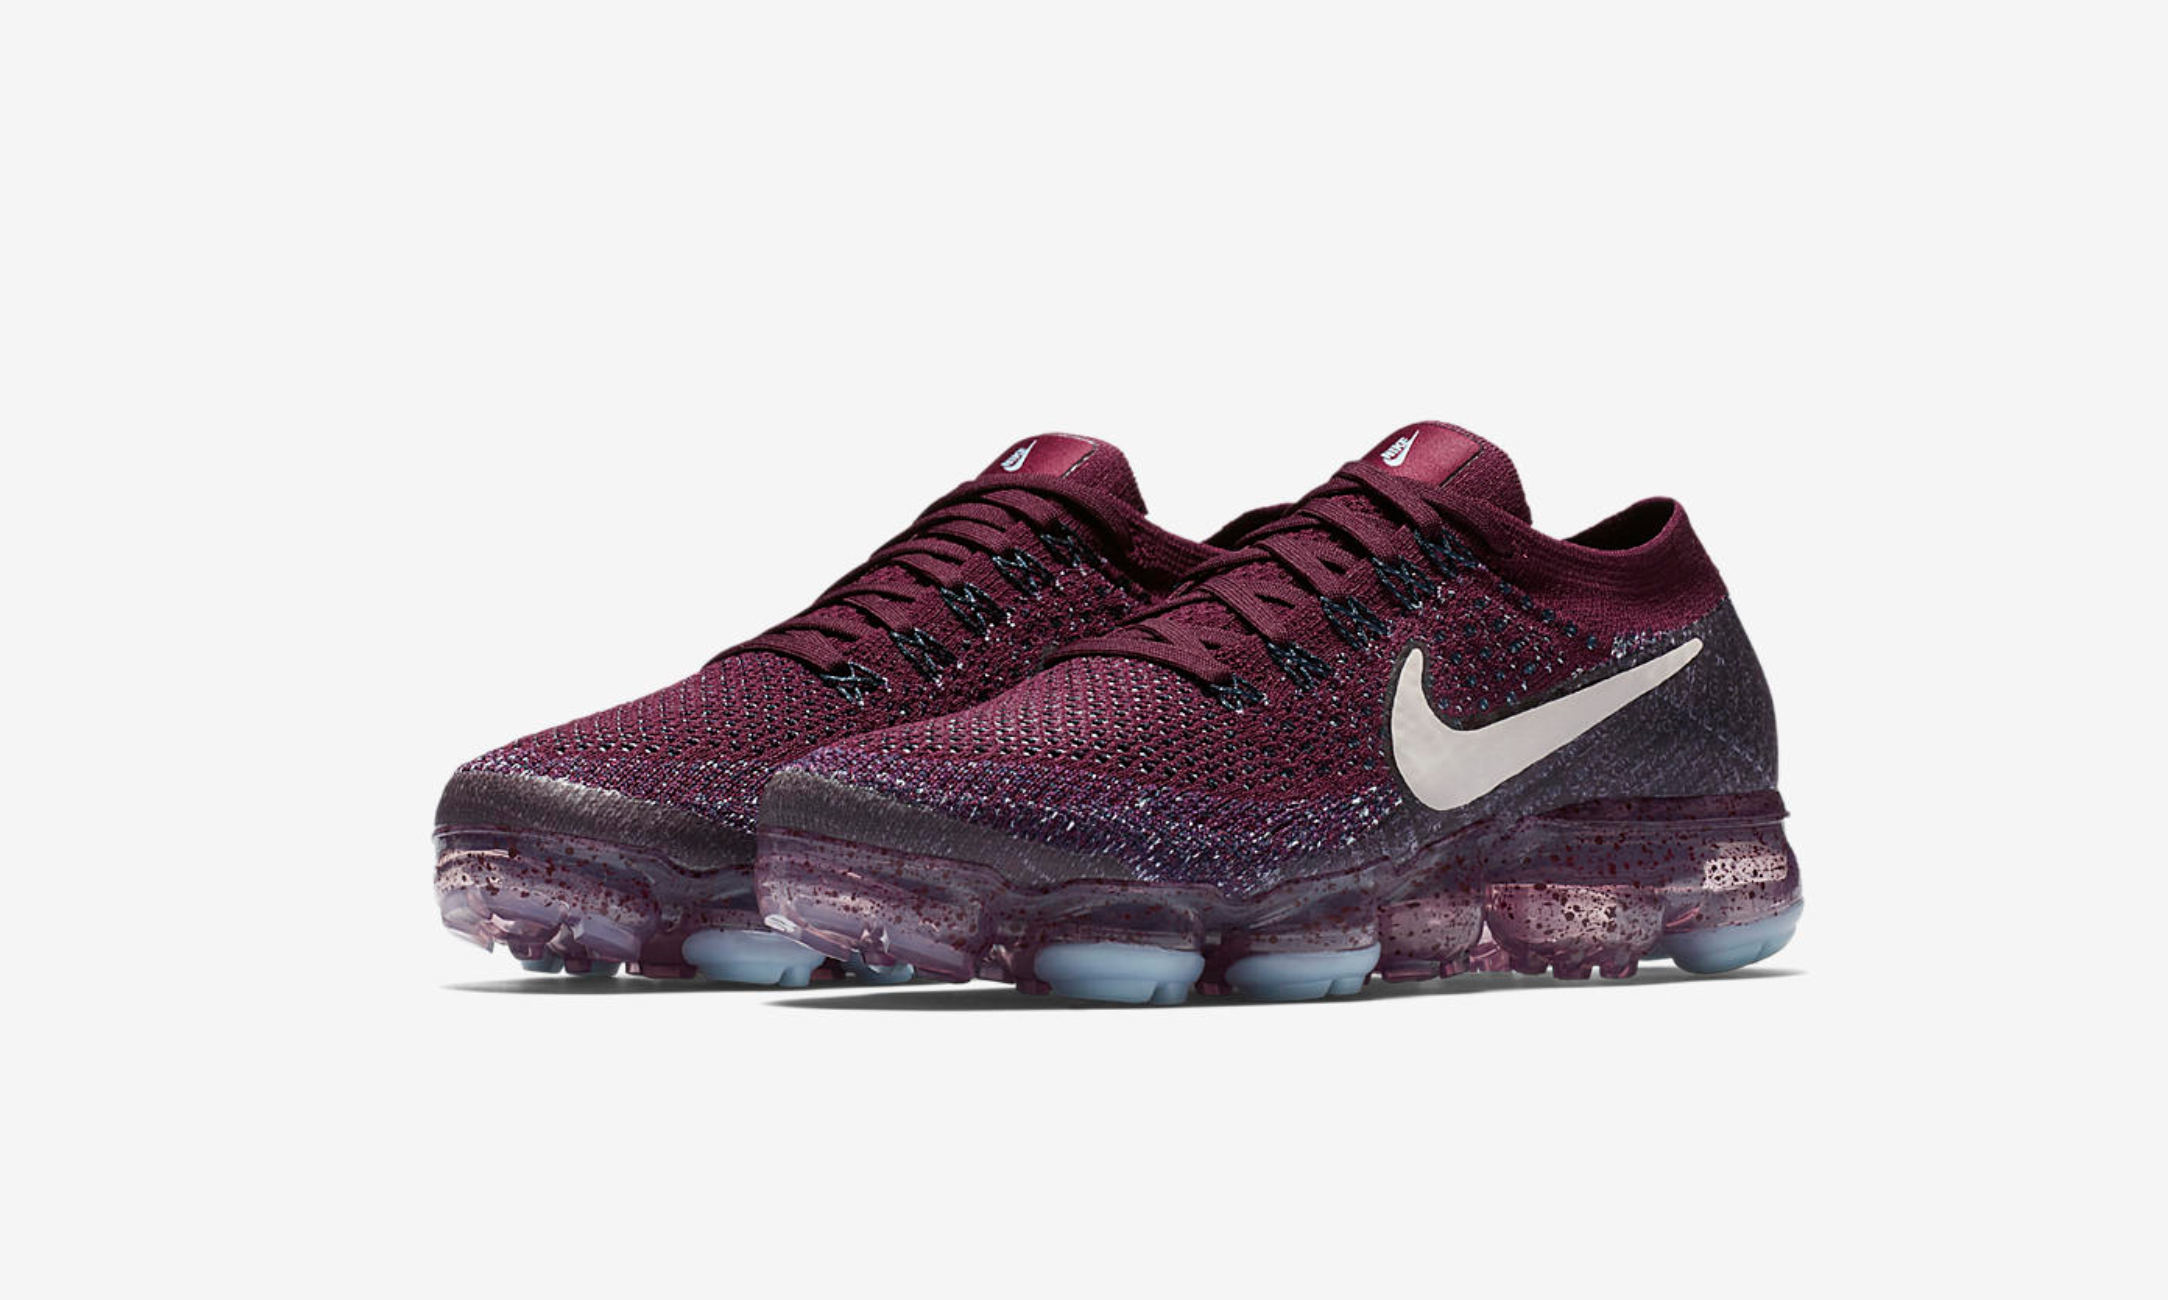 outlet store 62cee d0576 Release Reminder: Nike Air VaporMax Drops in Two Colorways ...